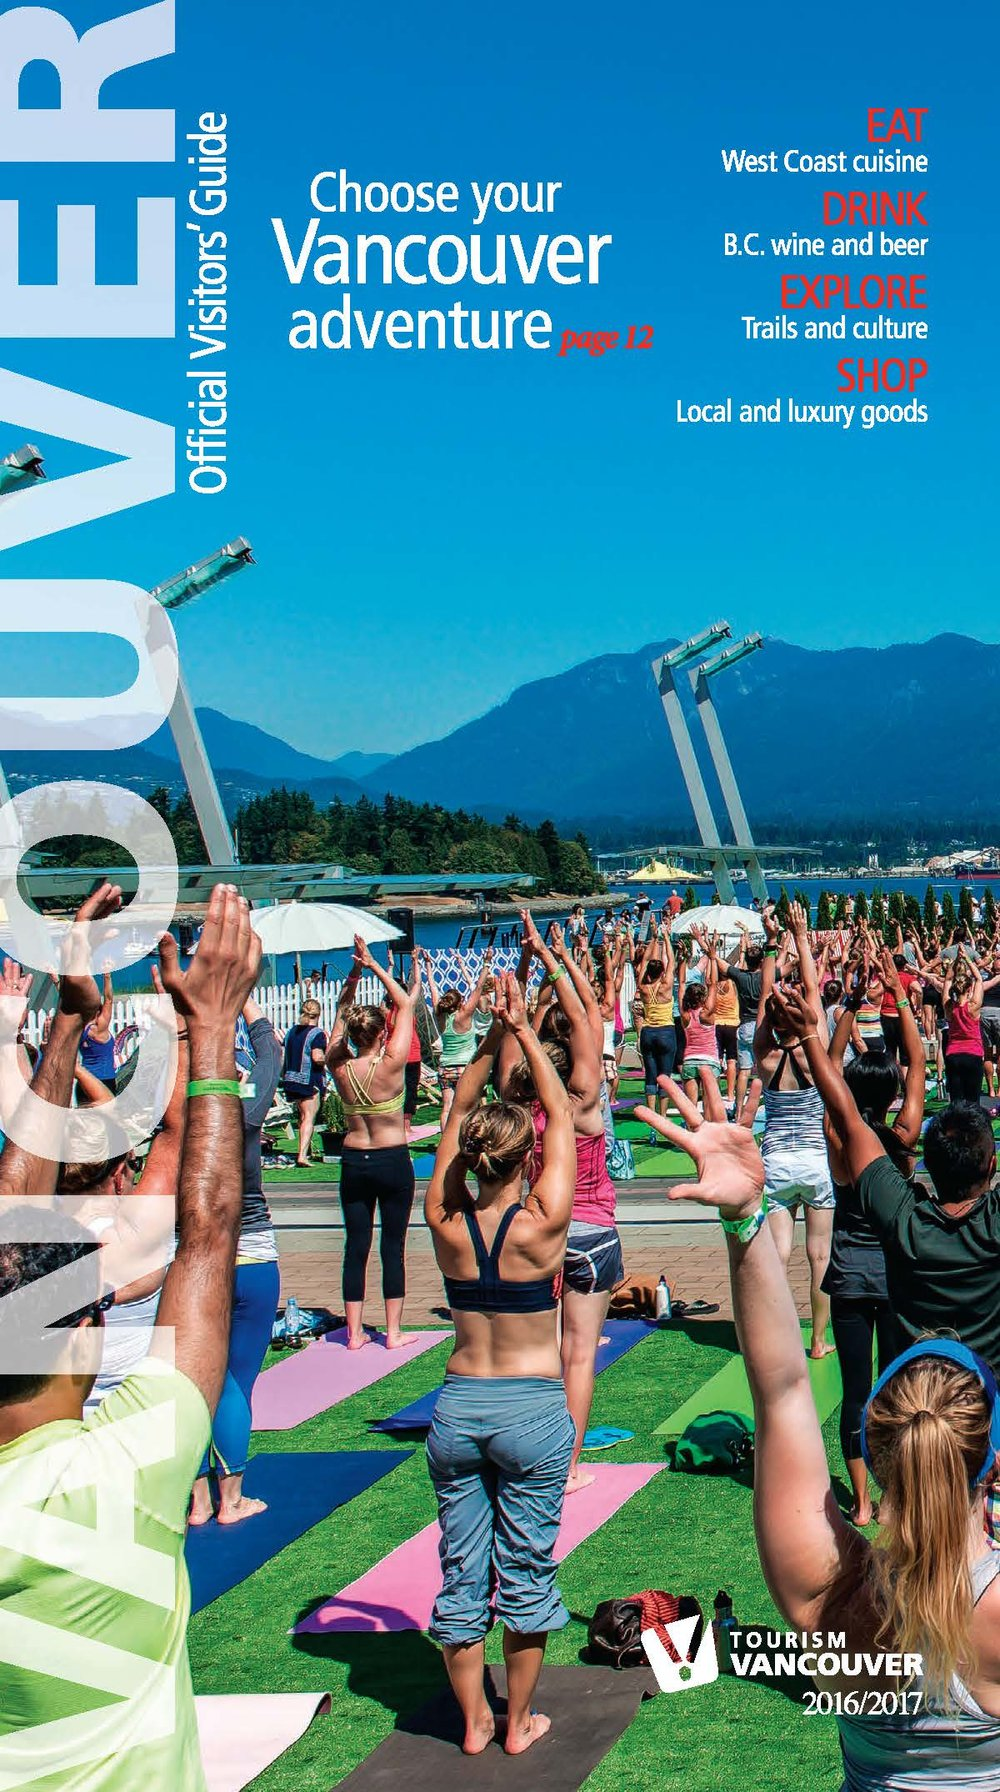 2016/17 Tourism Vancouver  Official Visitors' Guide